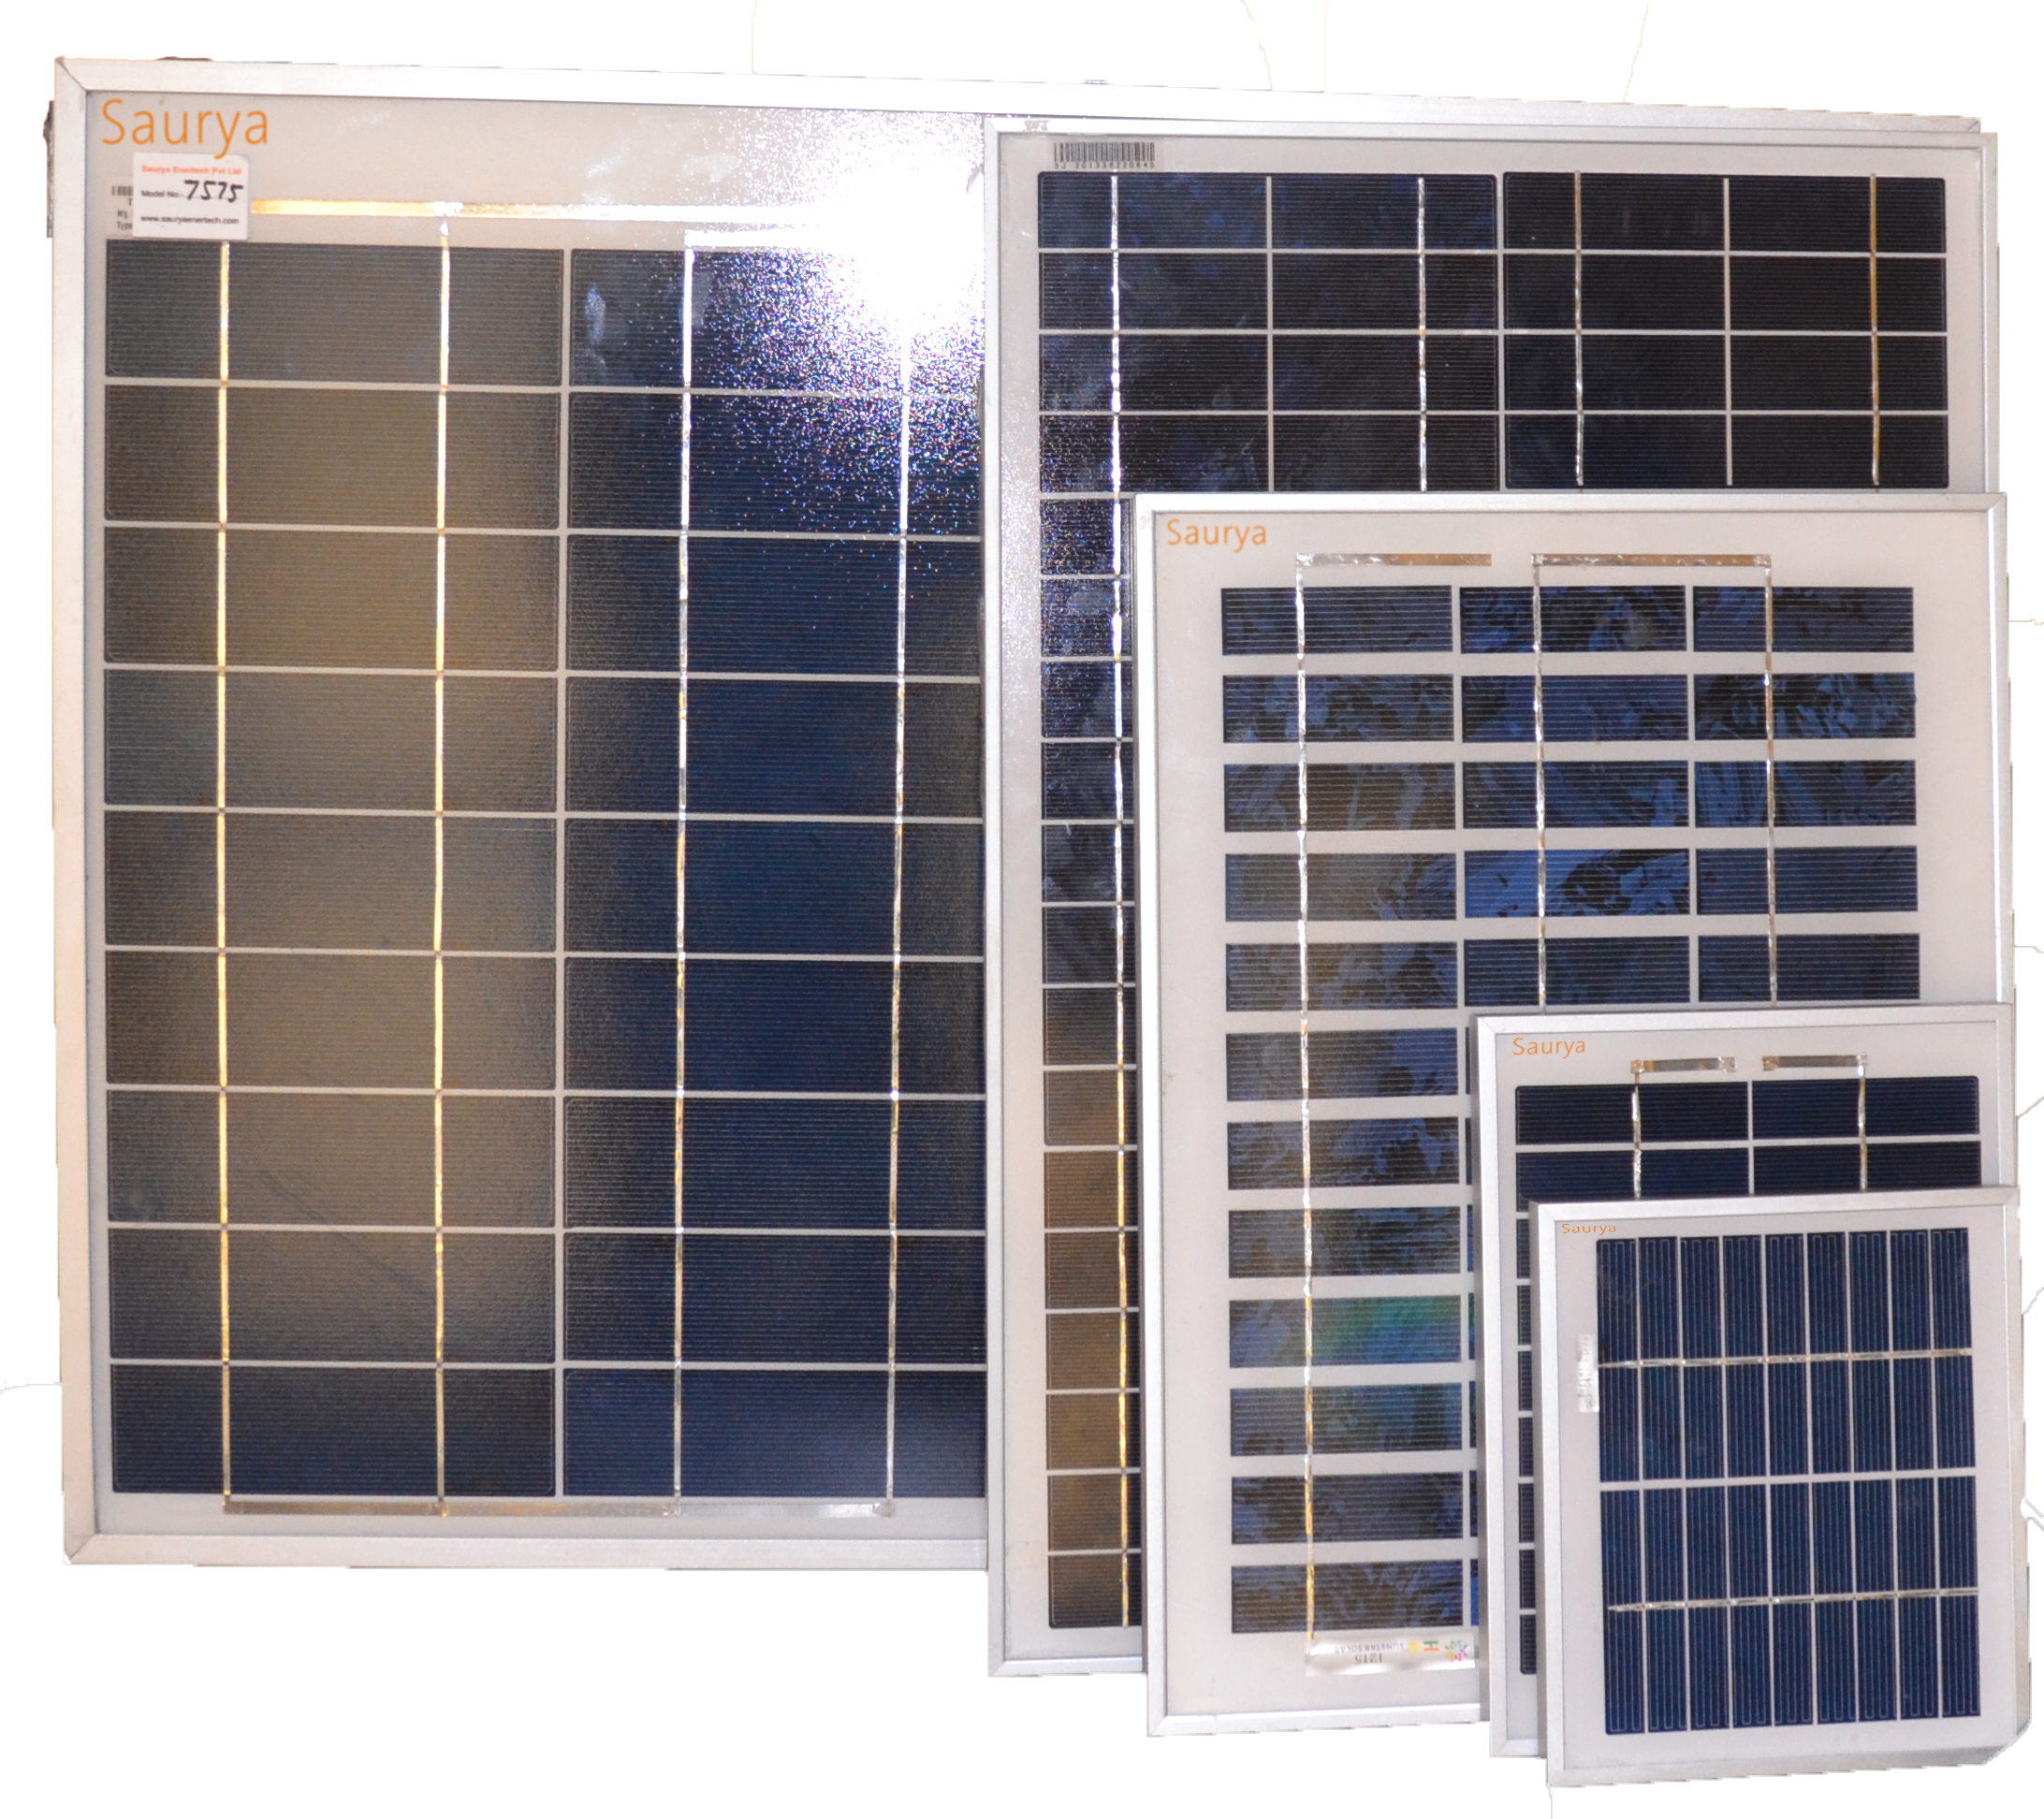 solar panel price in india saurya solar panels. Black Bedroom Furniture Sets. Home Design Ideas